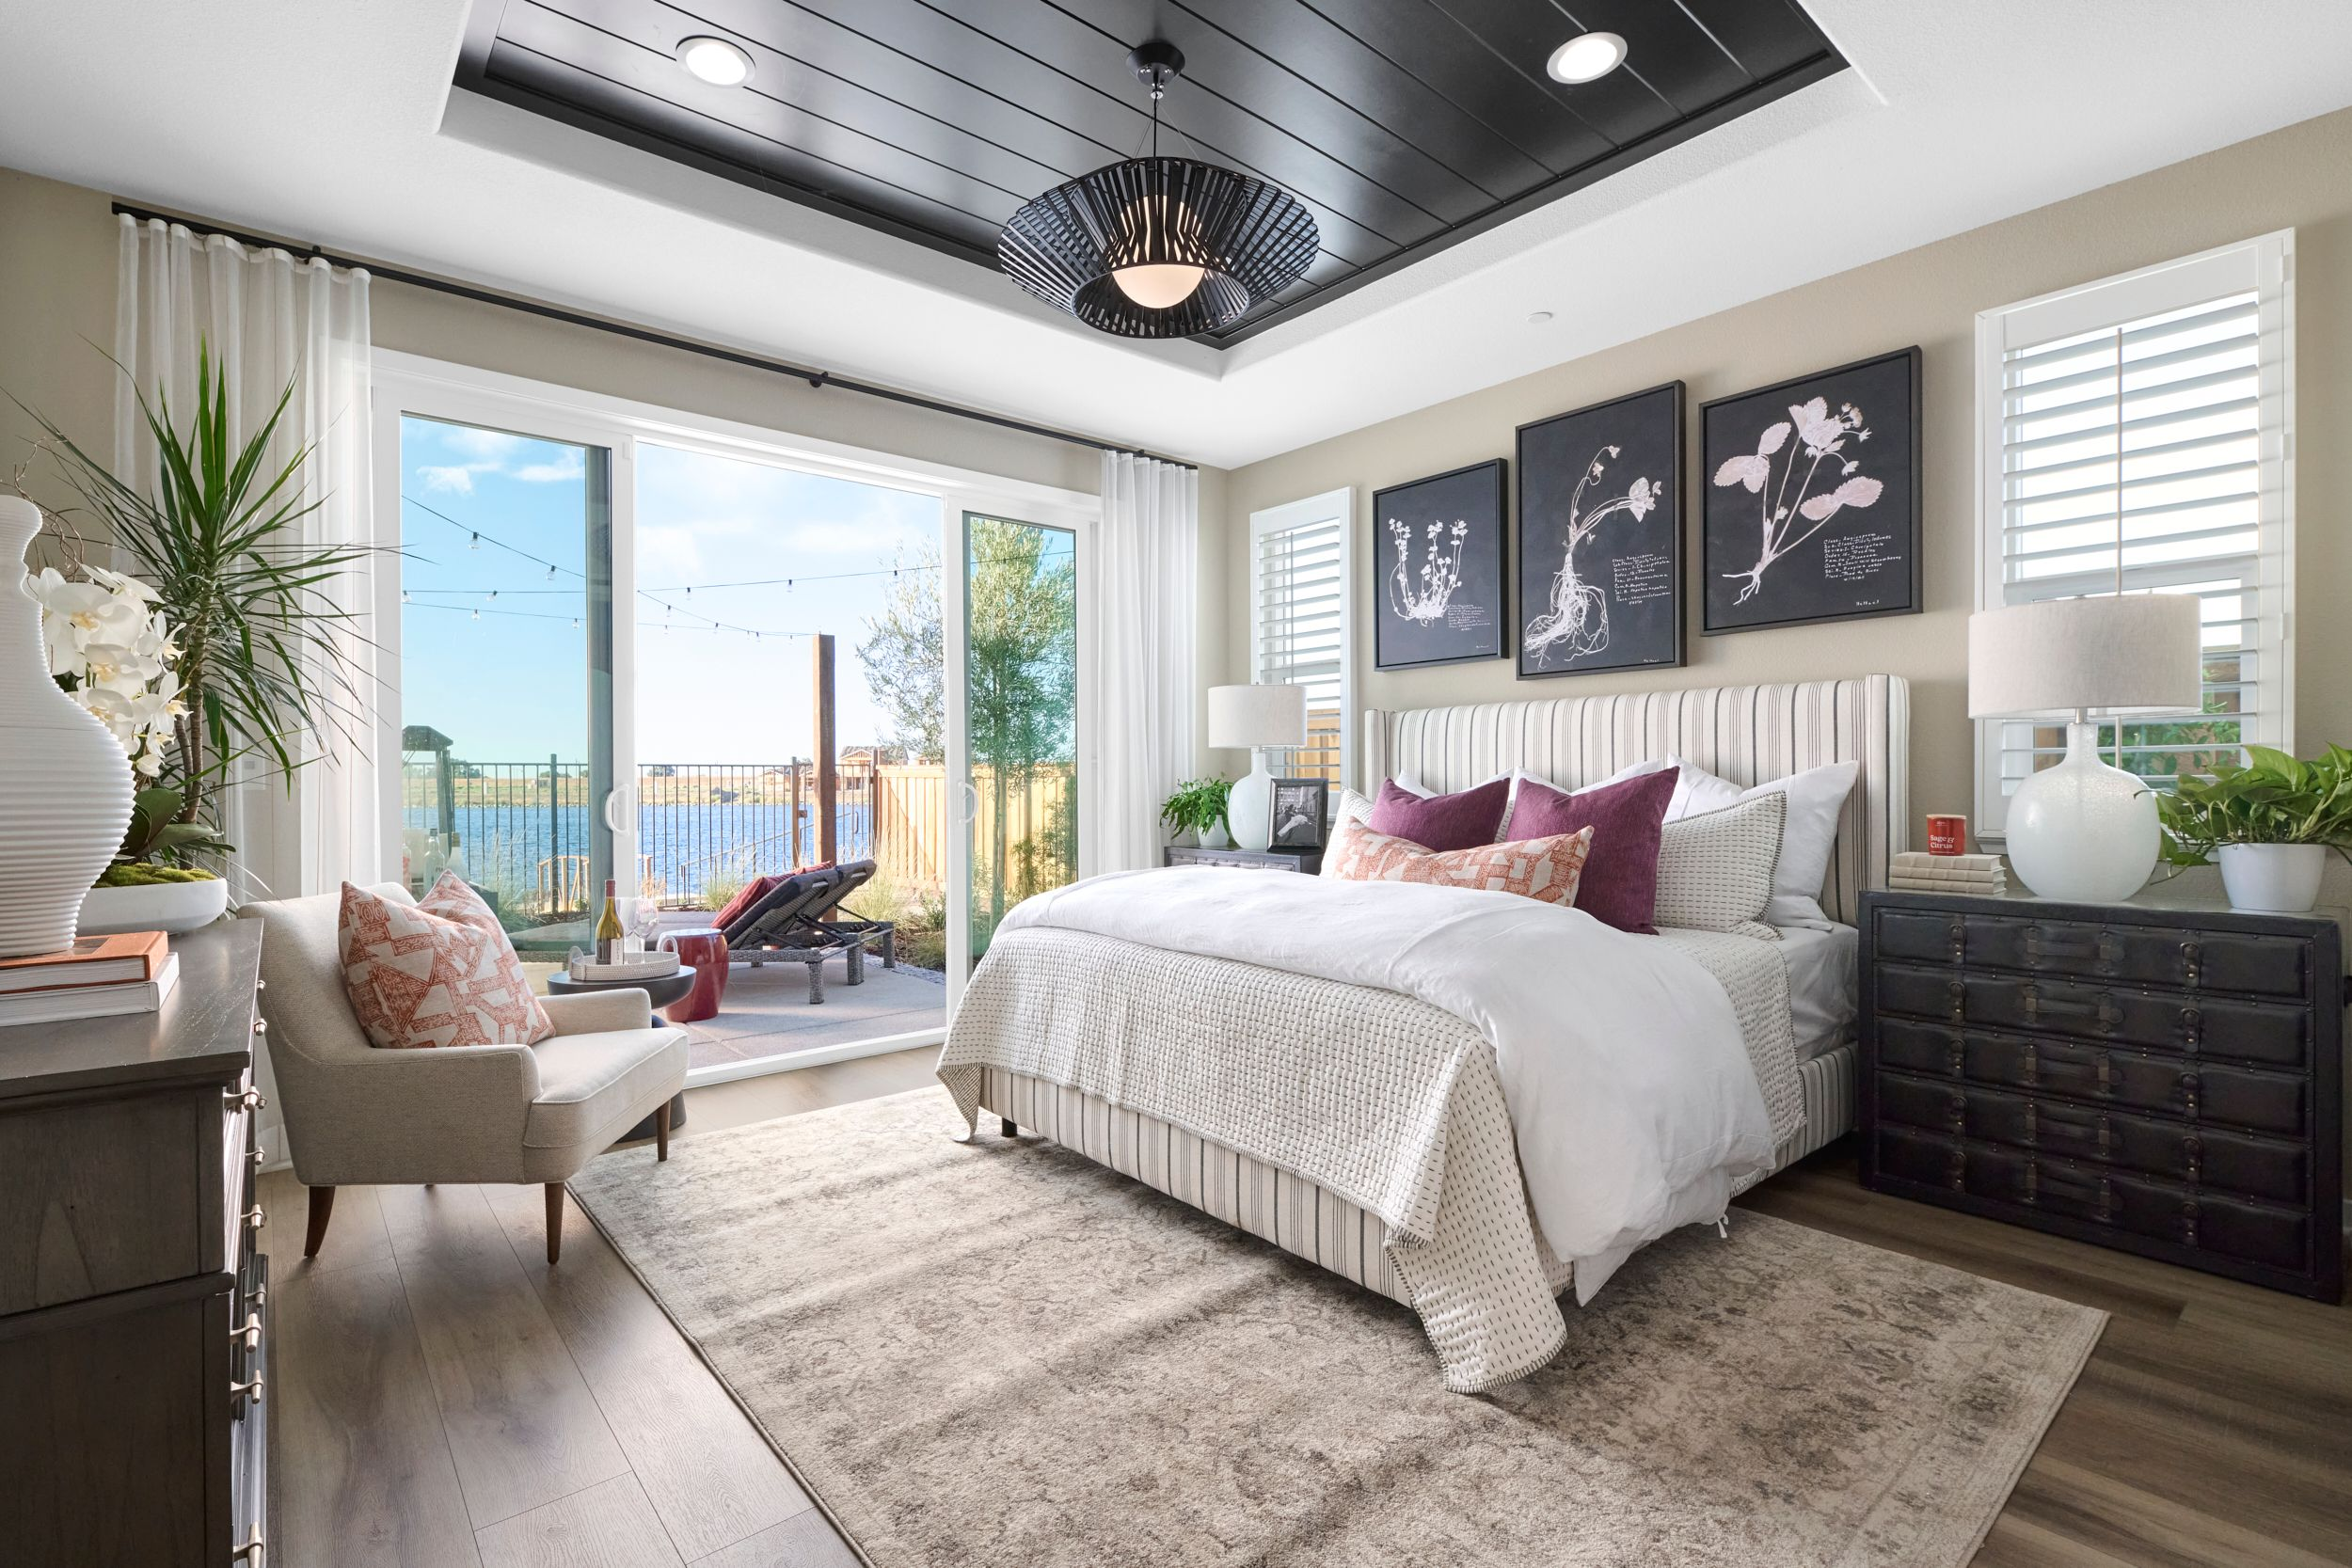 Bedroom featured in the Residence 1 By Van Daele Homes in Stockton-Lodi, CA